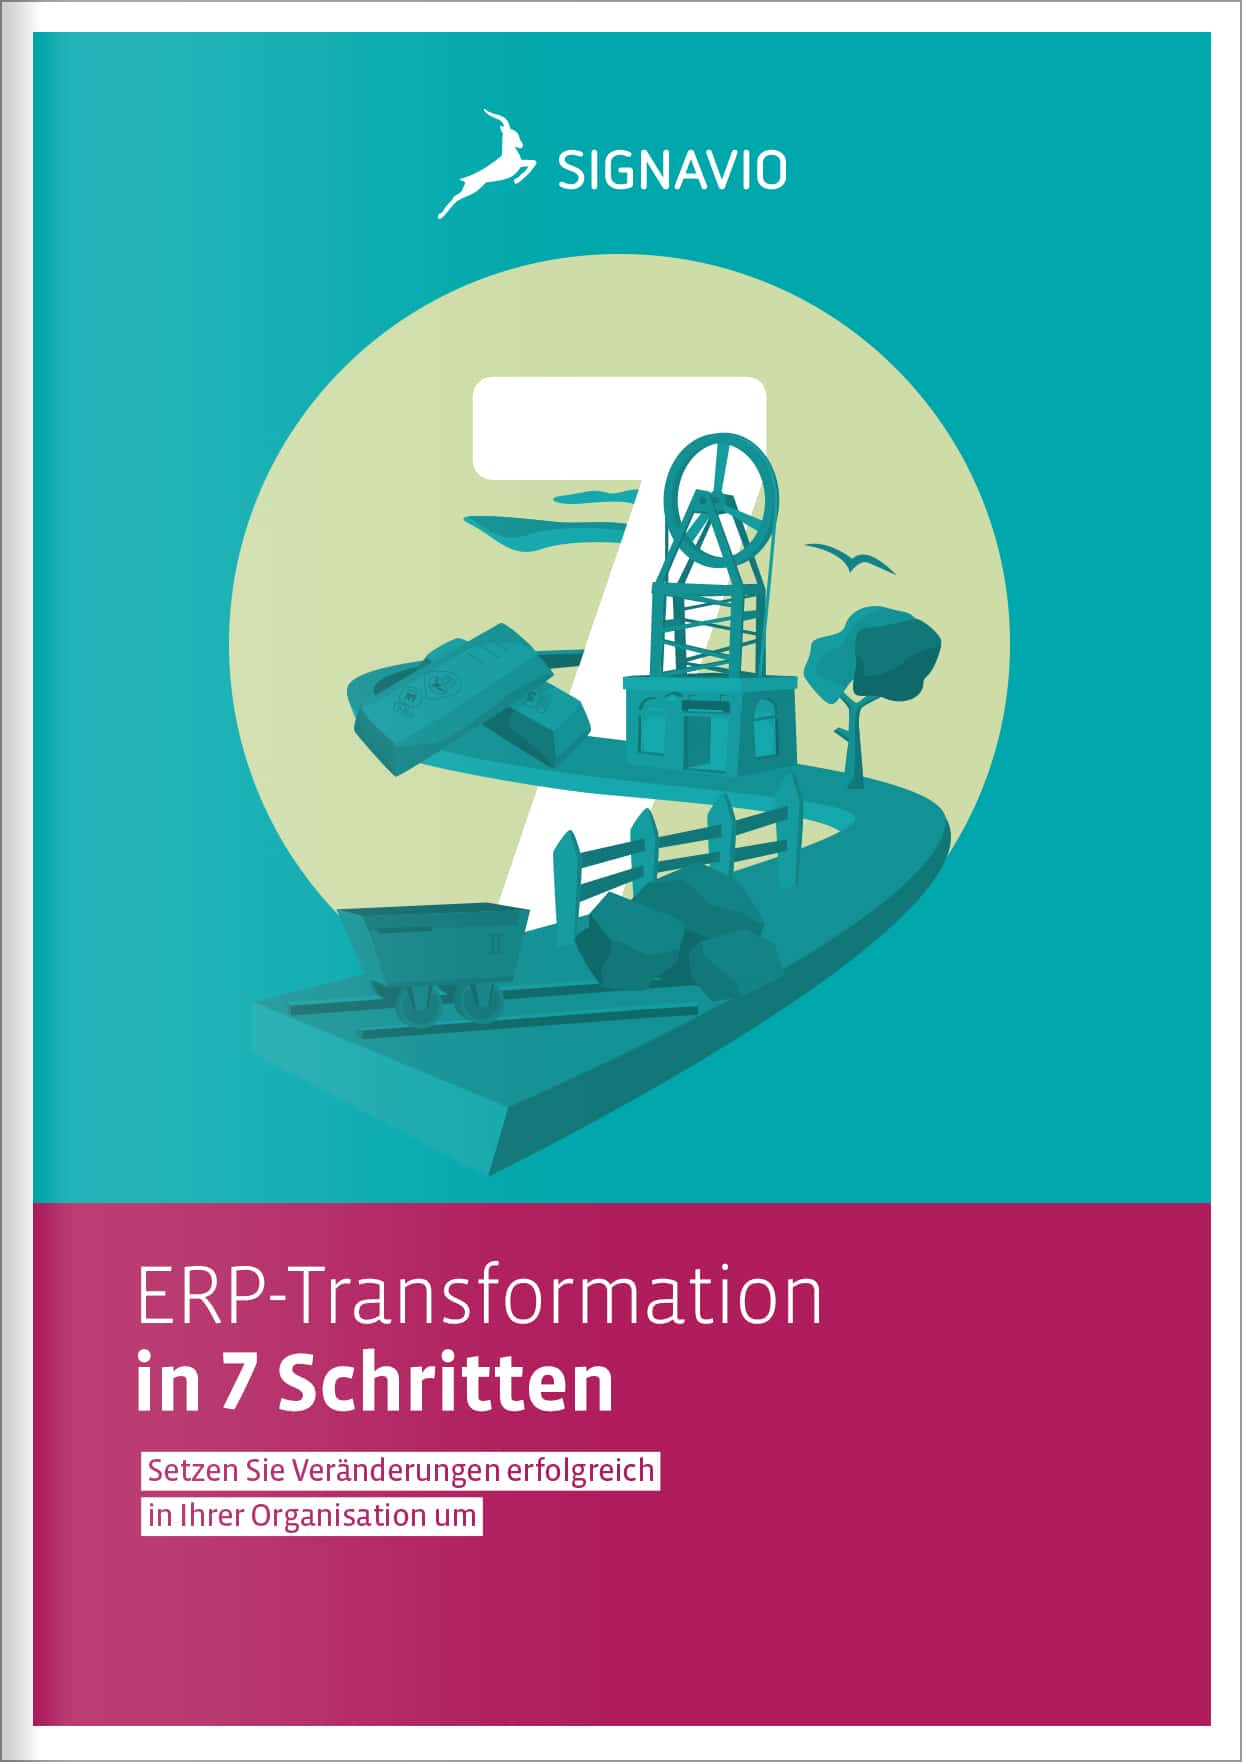 ERP-Transformation in 7 Schritten (de)